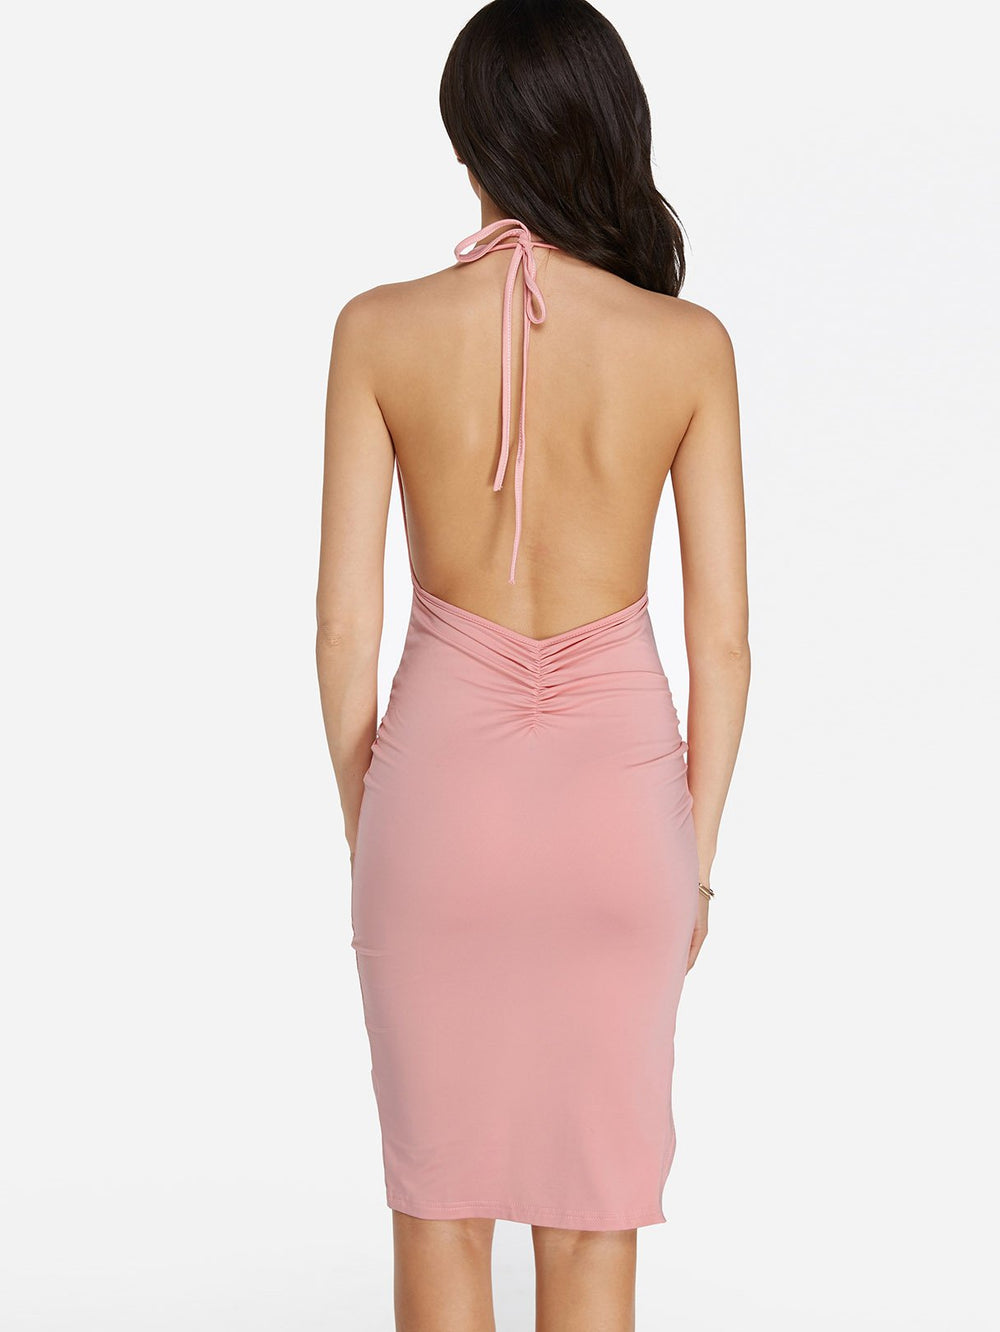 Womens Sleeveless Sexy Dresses